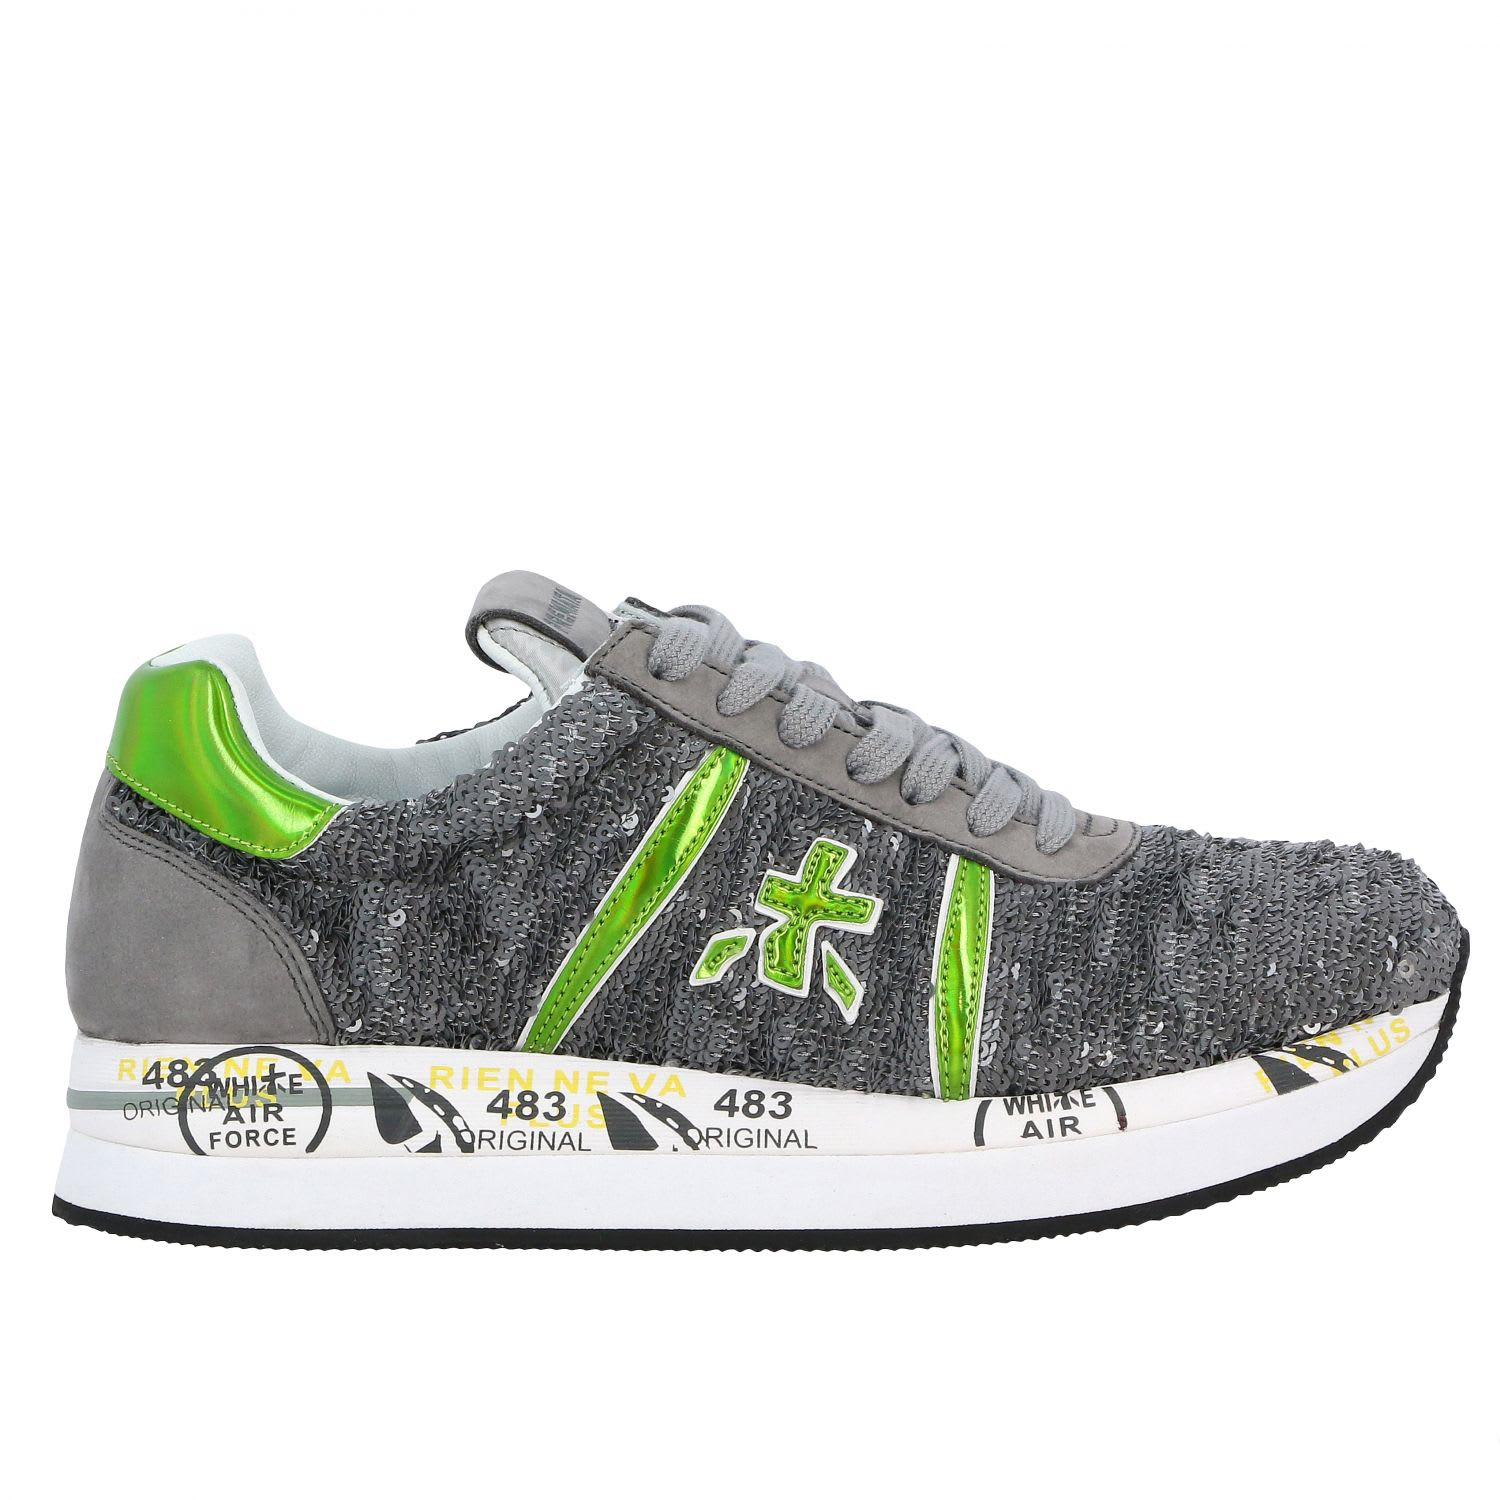 Premiata Sneakers Conny Premiata Sneakers In Suede And Writable Sequins With Logo